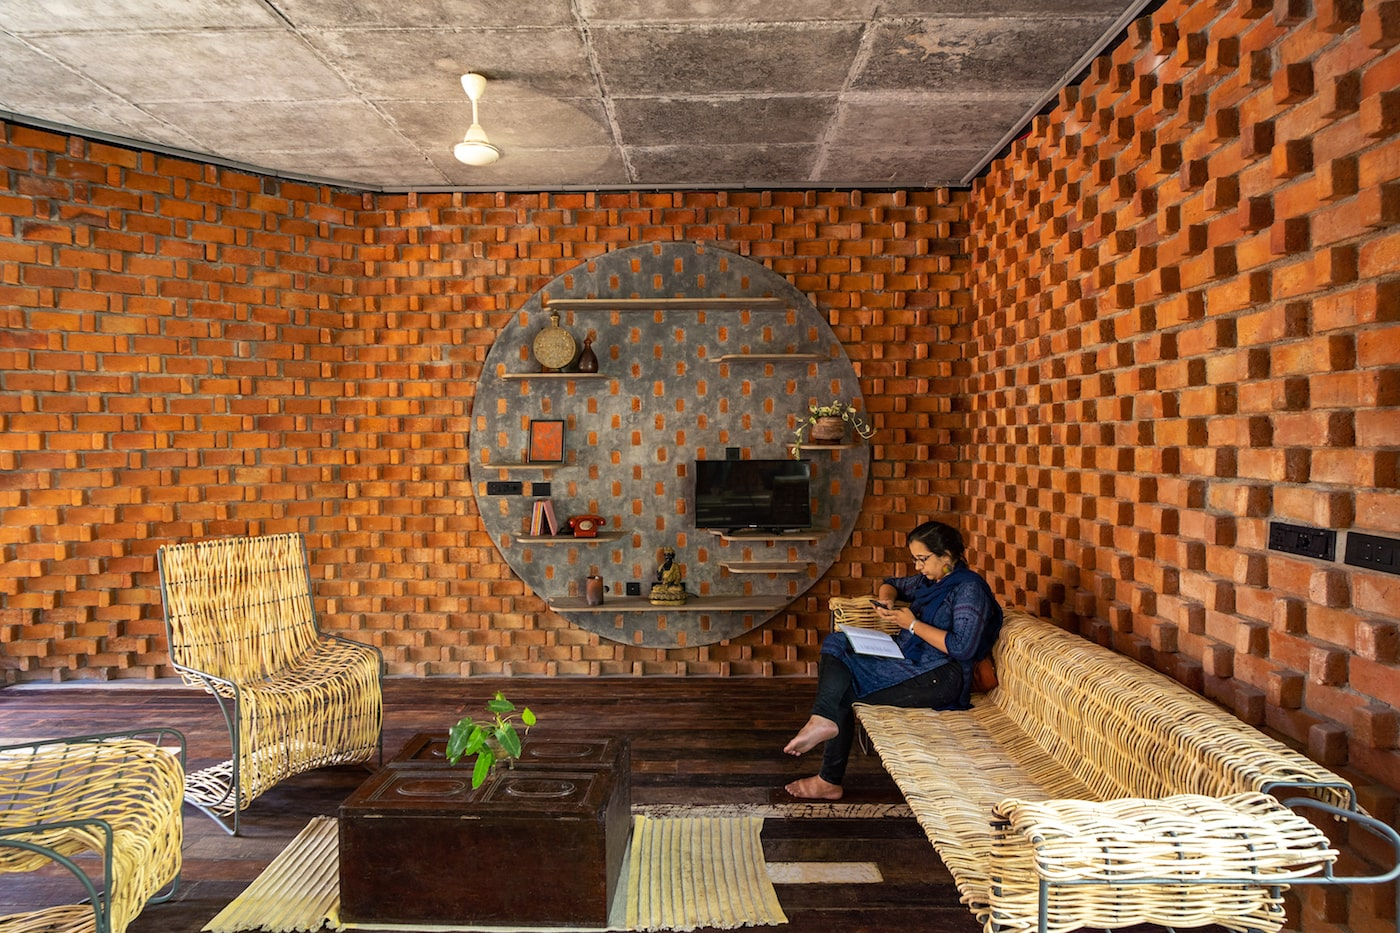 Woman sitting on cane lounge in brick home